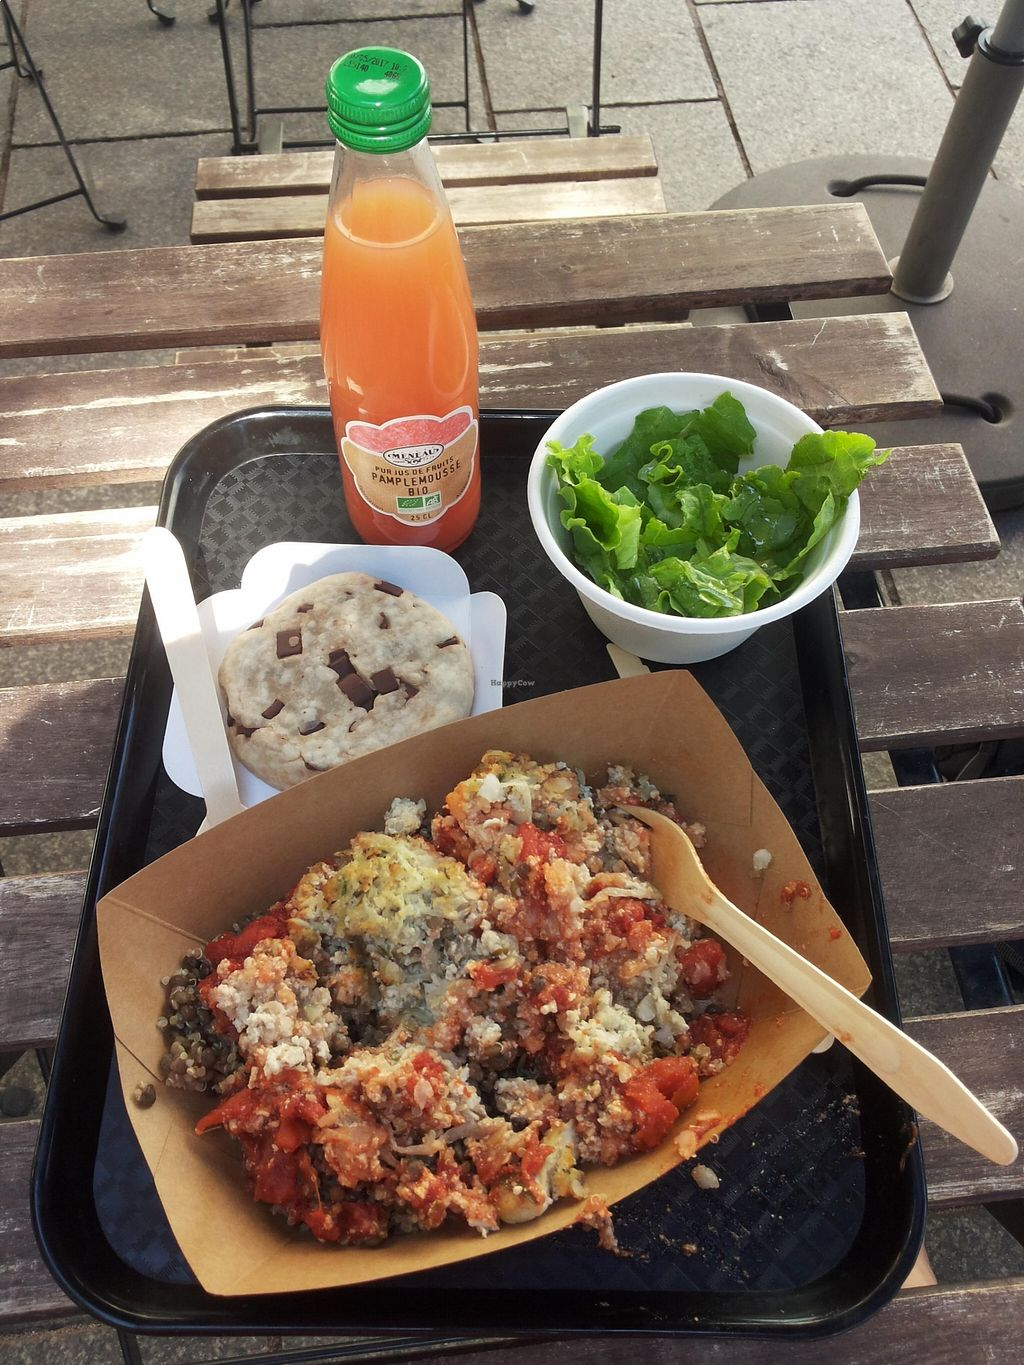 """Photo of Green Bear Coffee - La Canebiere  by <a href=""""/members/profile/Anna-Lin"""">Anna-Lin</a> <br/>Tofu balls with lentil-quinoa, green salad and cookie <br/> August 22, 2015  - <a href='/contact/abuse/image/41101/114707'>Report</a>"""